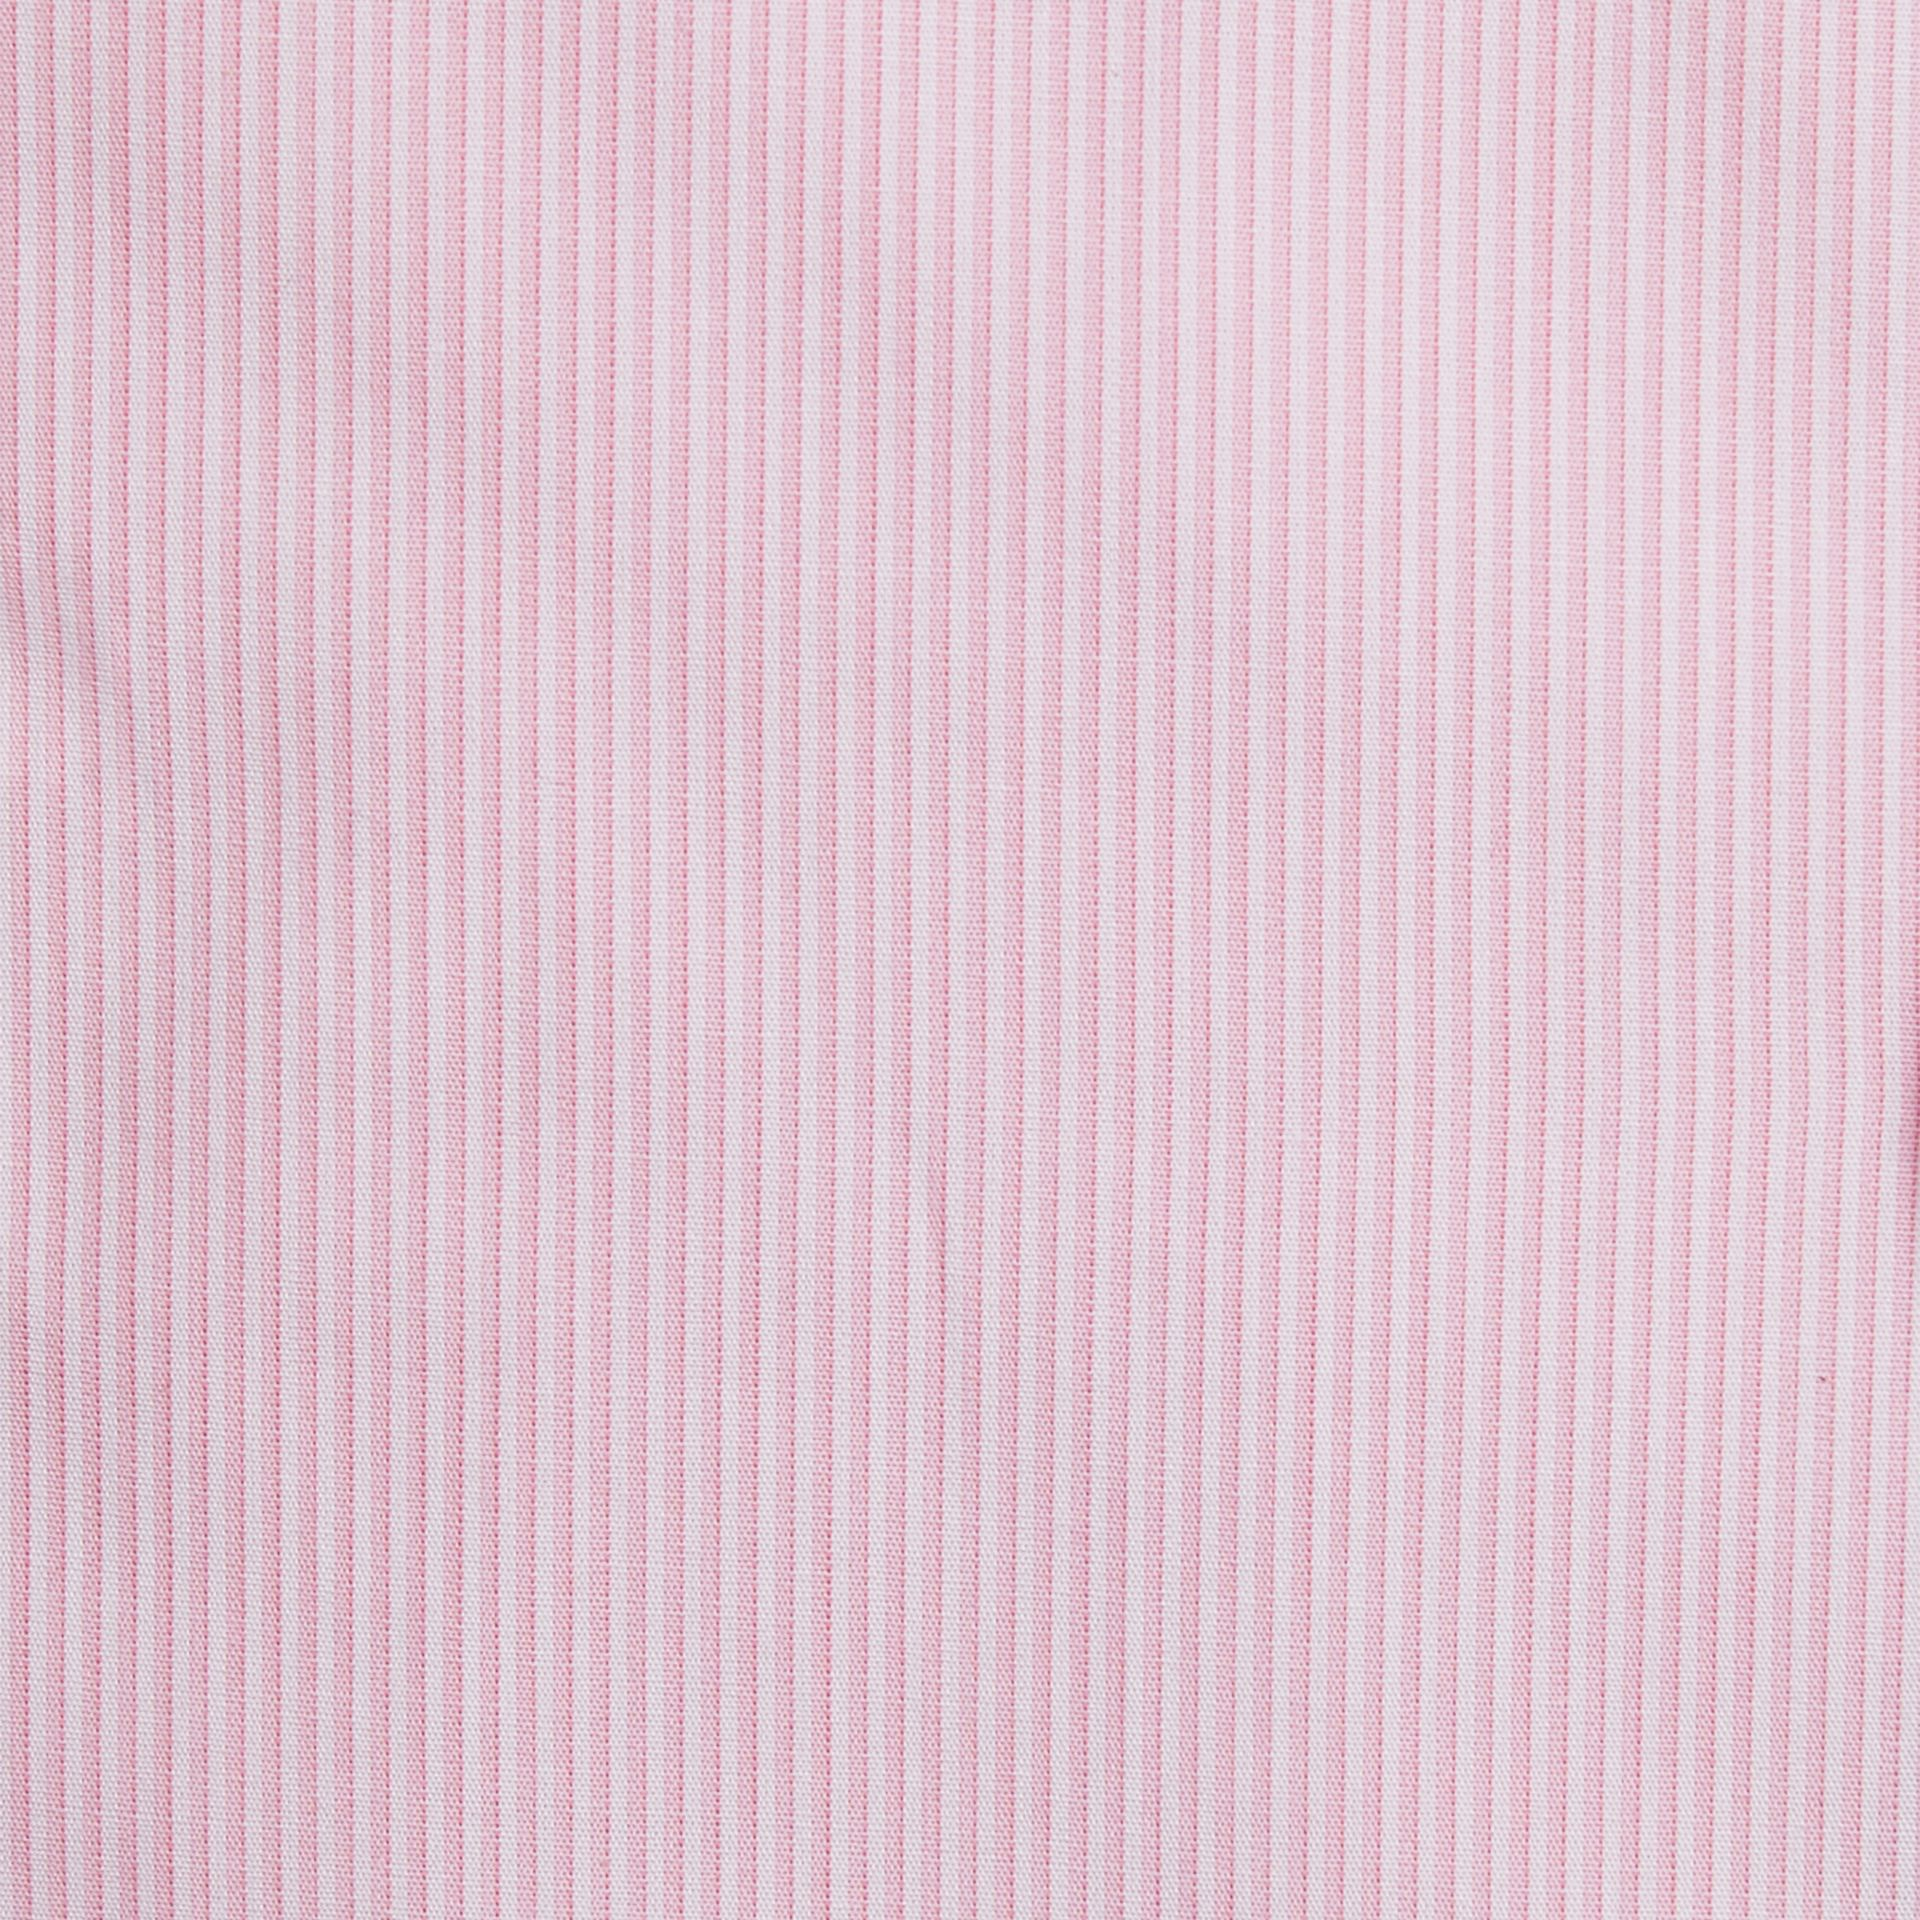 Slim Fit Striped Cotton Poplin Shirt in City Pink - Men | Burberry - gallery image 2